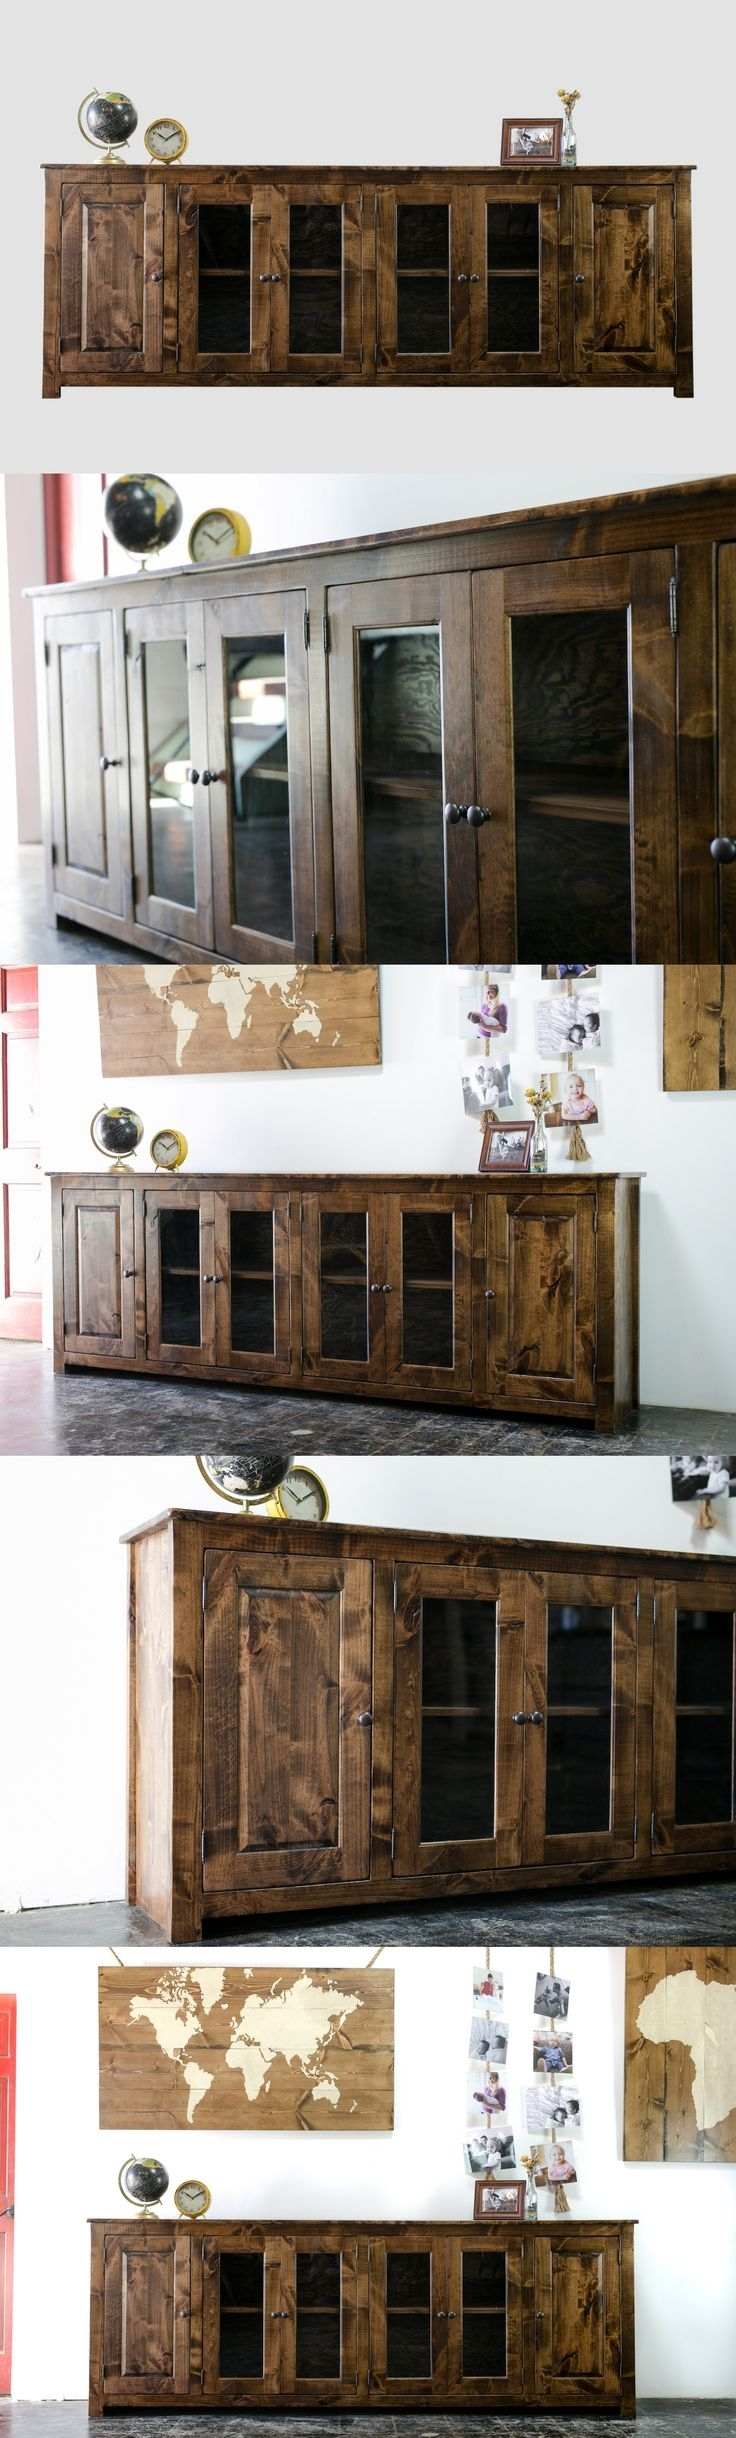 Inspiration about 25 Best Remodel Ideas Images On Pinterest | My House, For The Home Inside Most Recently Released Sawan Finish 4 Drawer/4 Door Icebox Sideboards (#19 of 20)